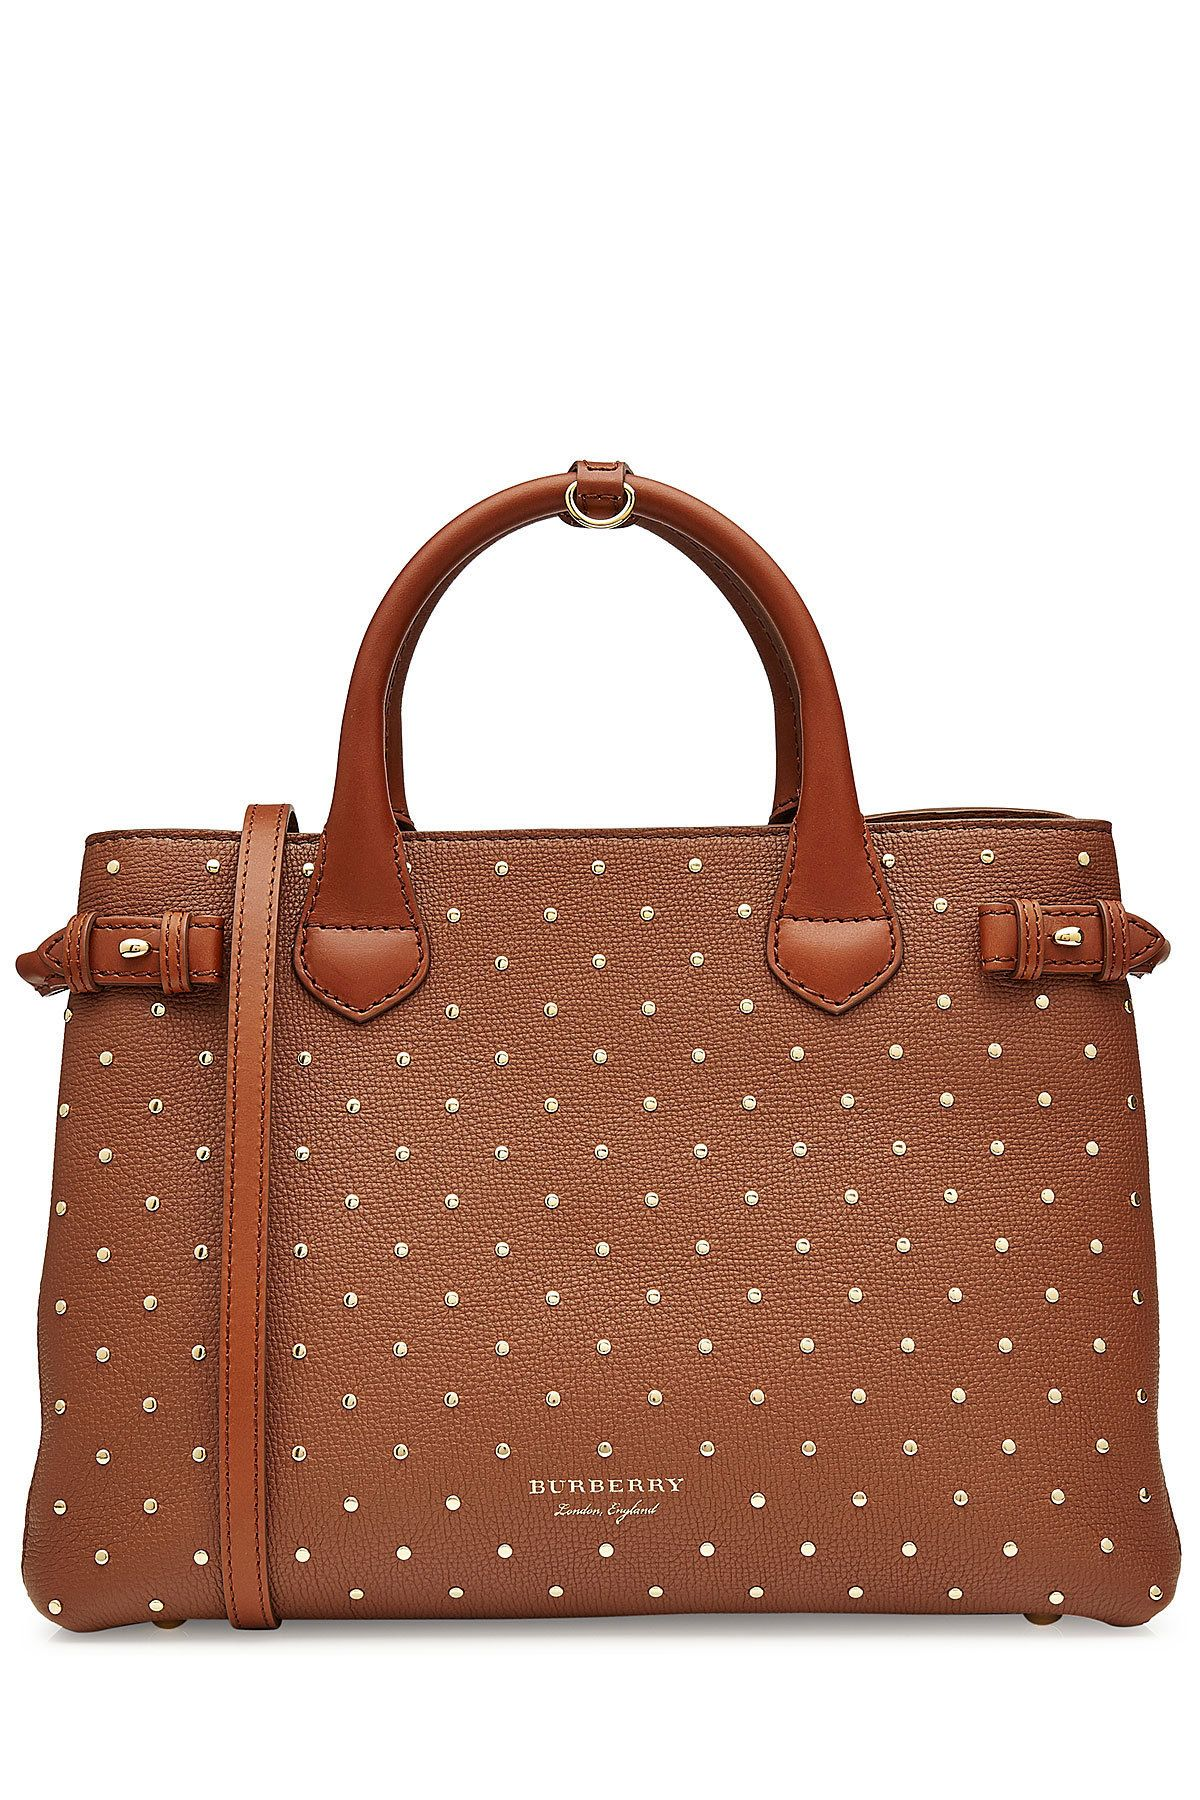 113236b62e Burberry Medium Banner Leather Tote with Studs | Handbags | Burberry ...